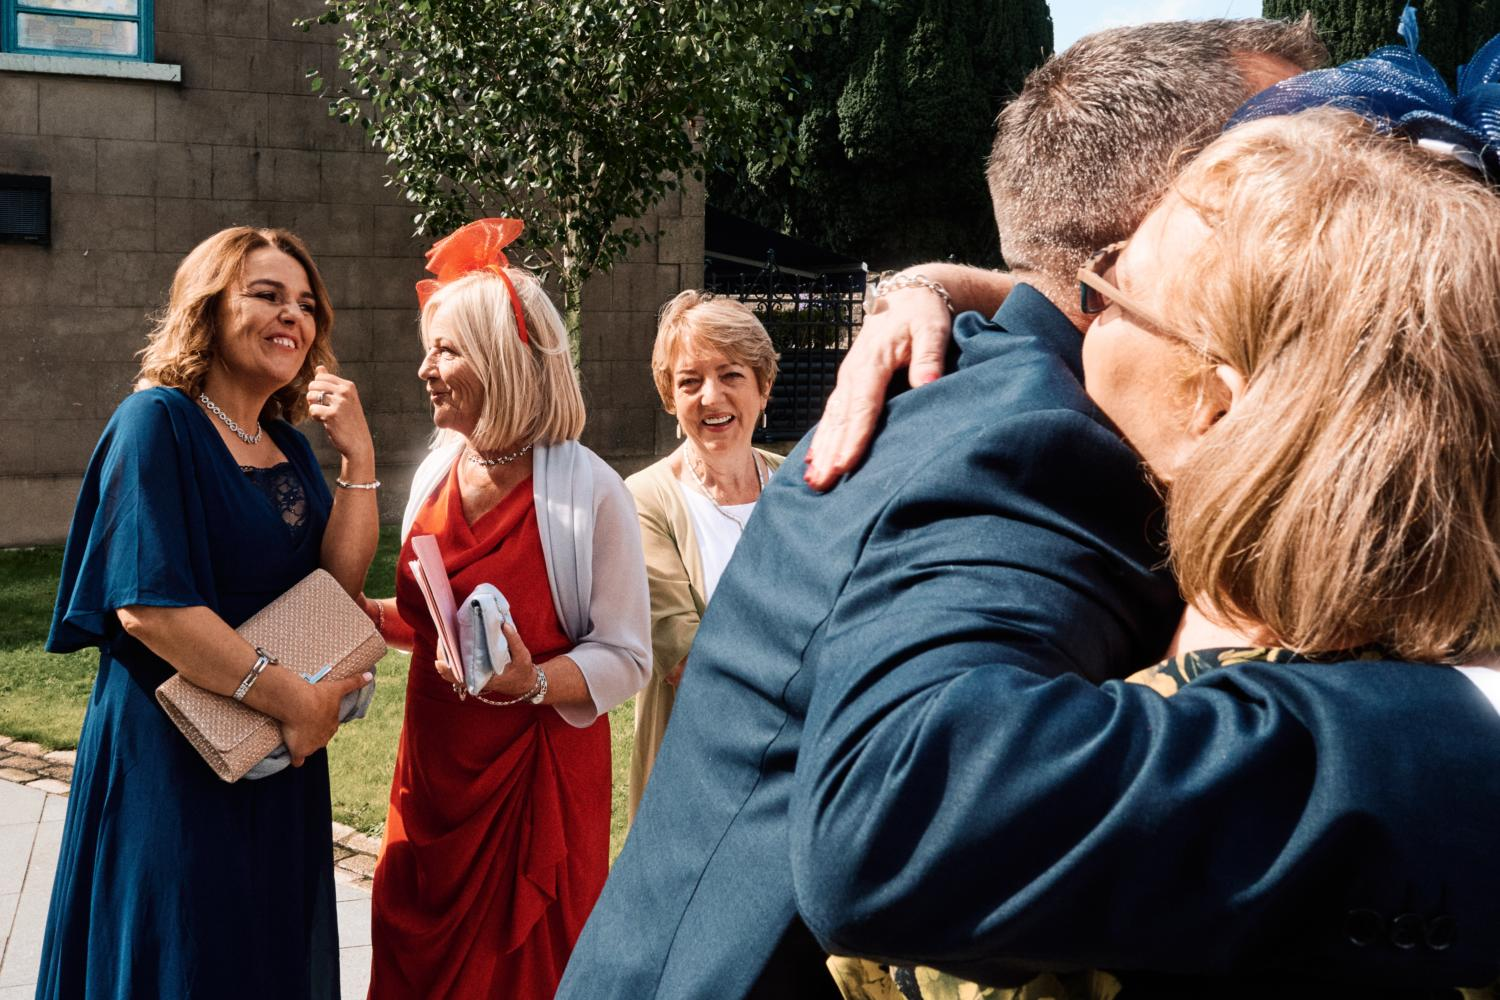 Wedding guests greet each other outside a chapel